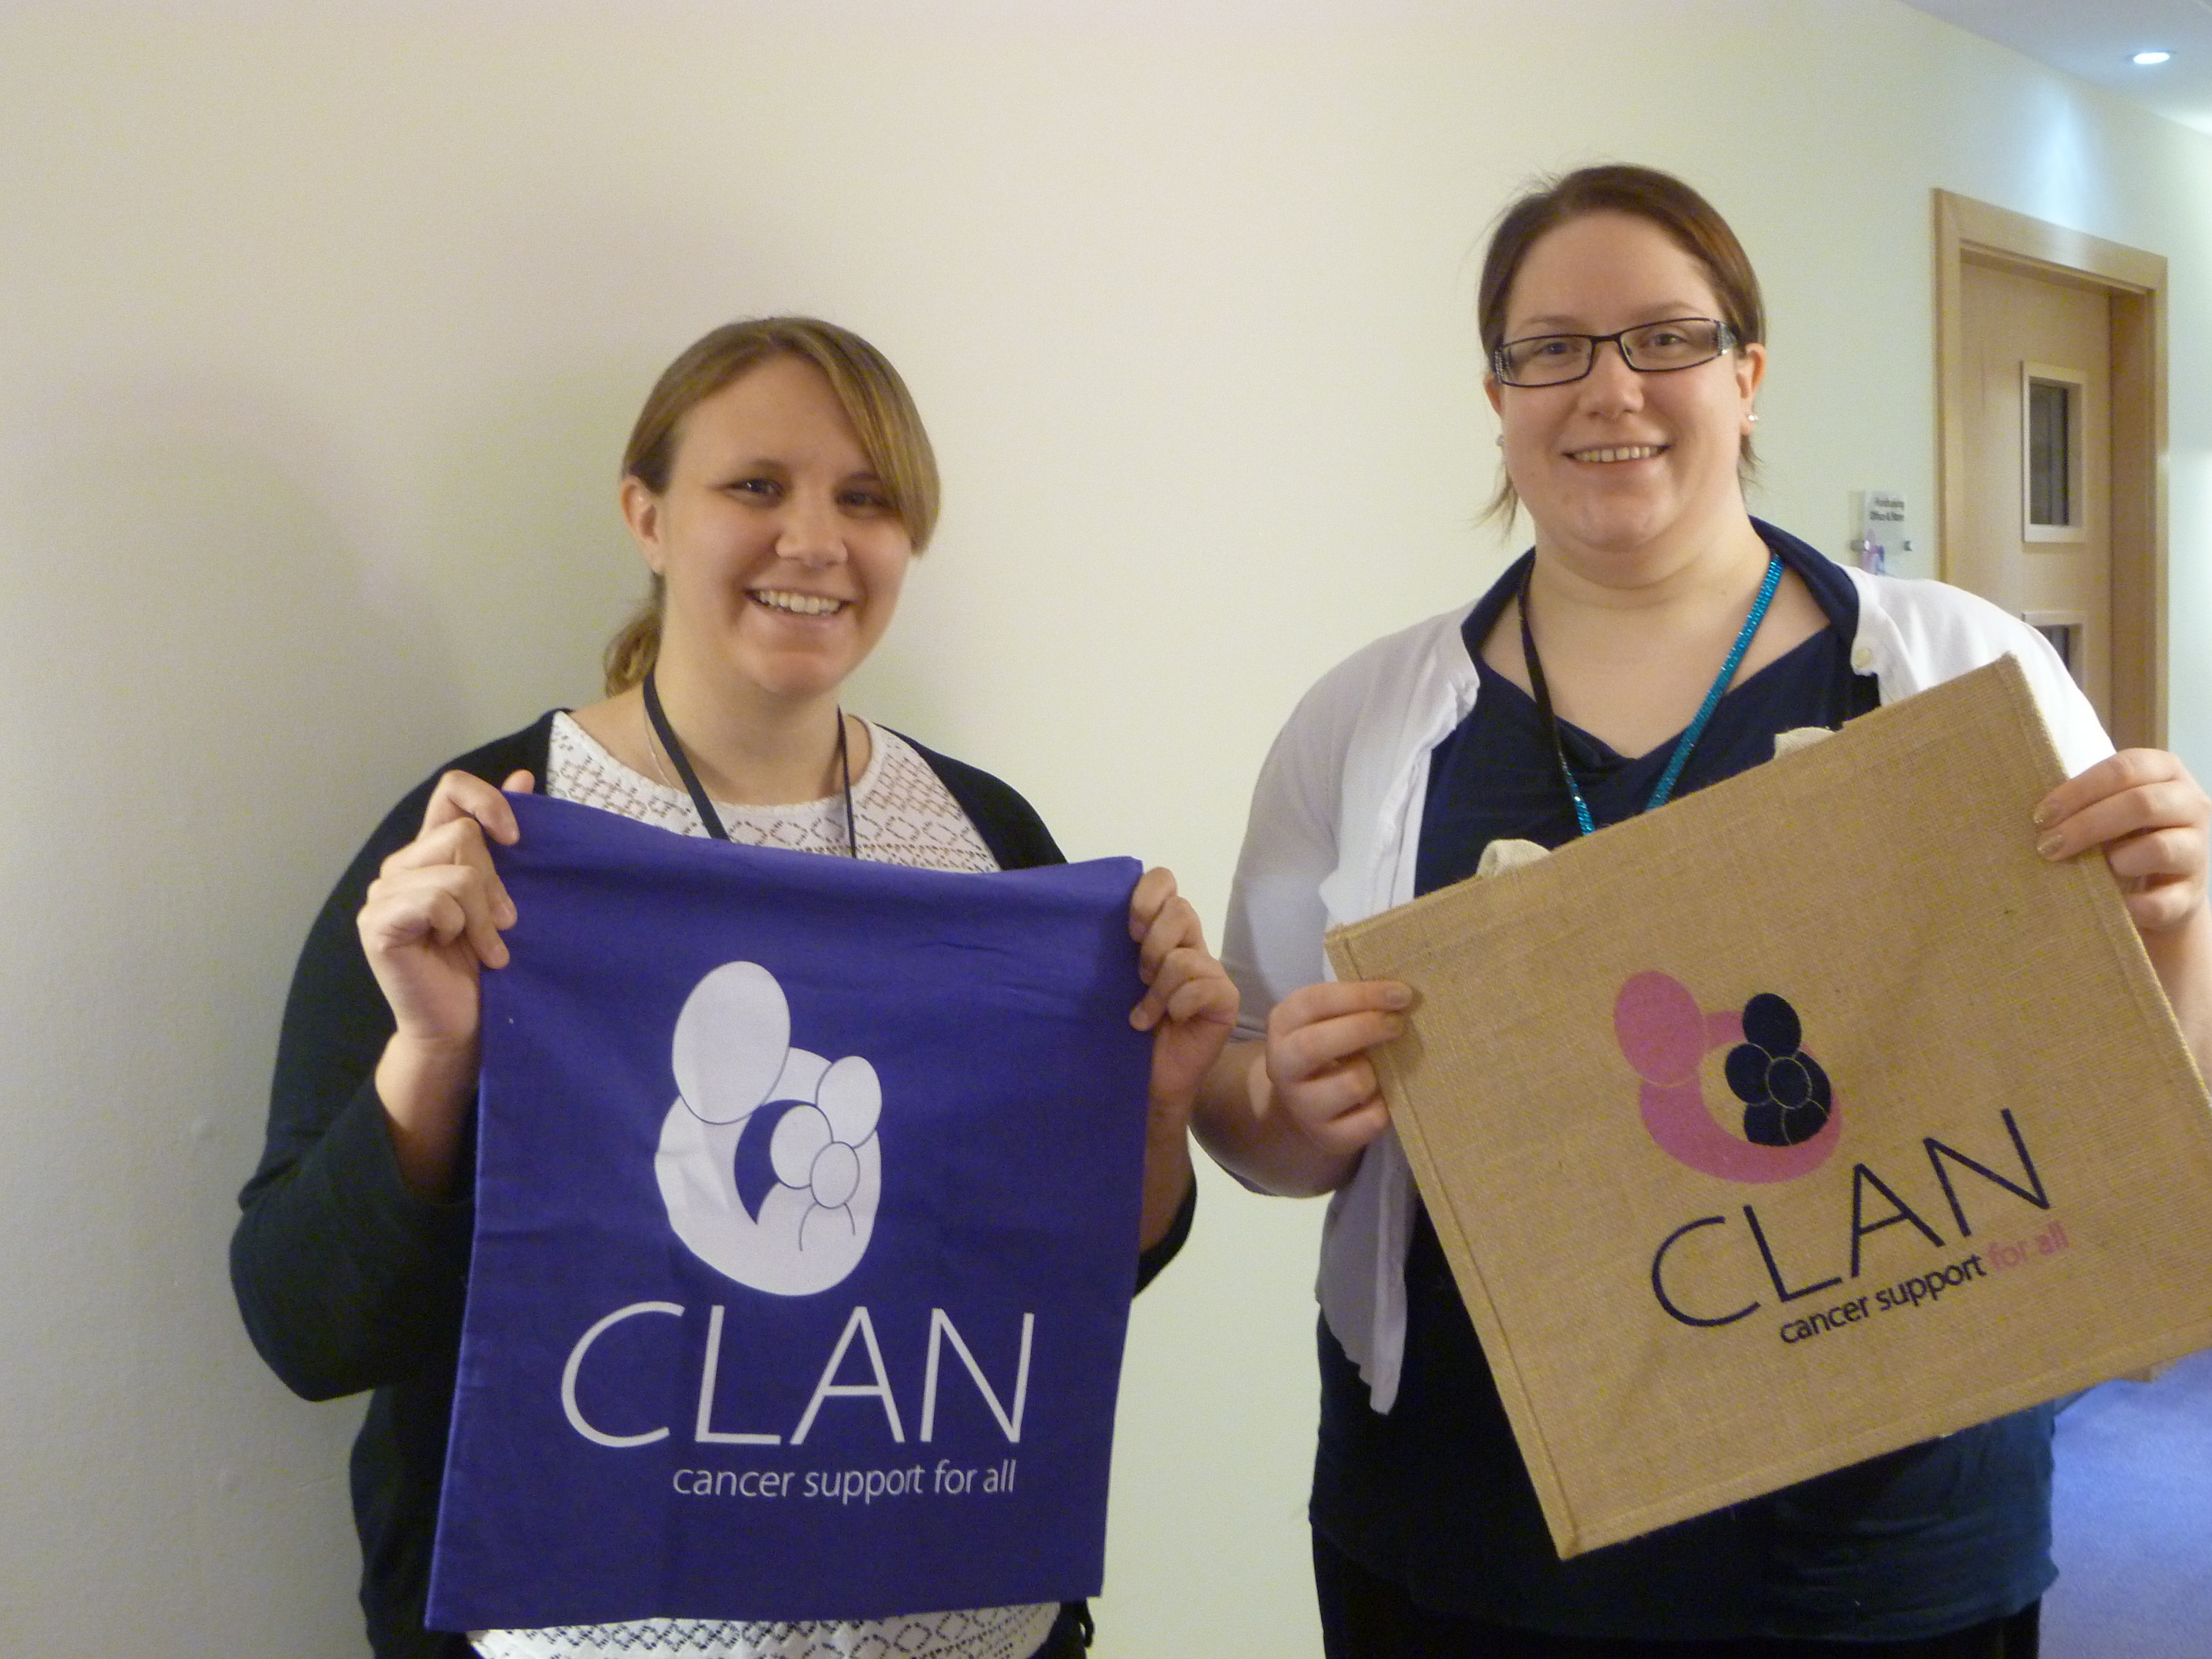 Members of the CLAN team Steph Dowling(left) and Zoe Barbour(right)